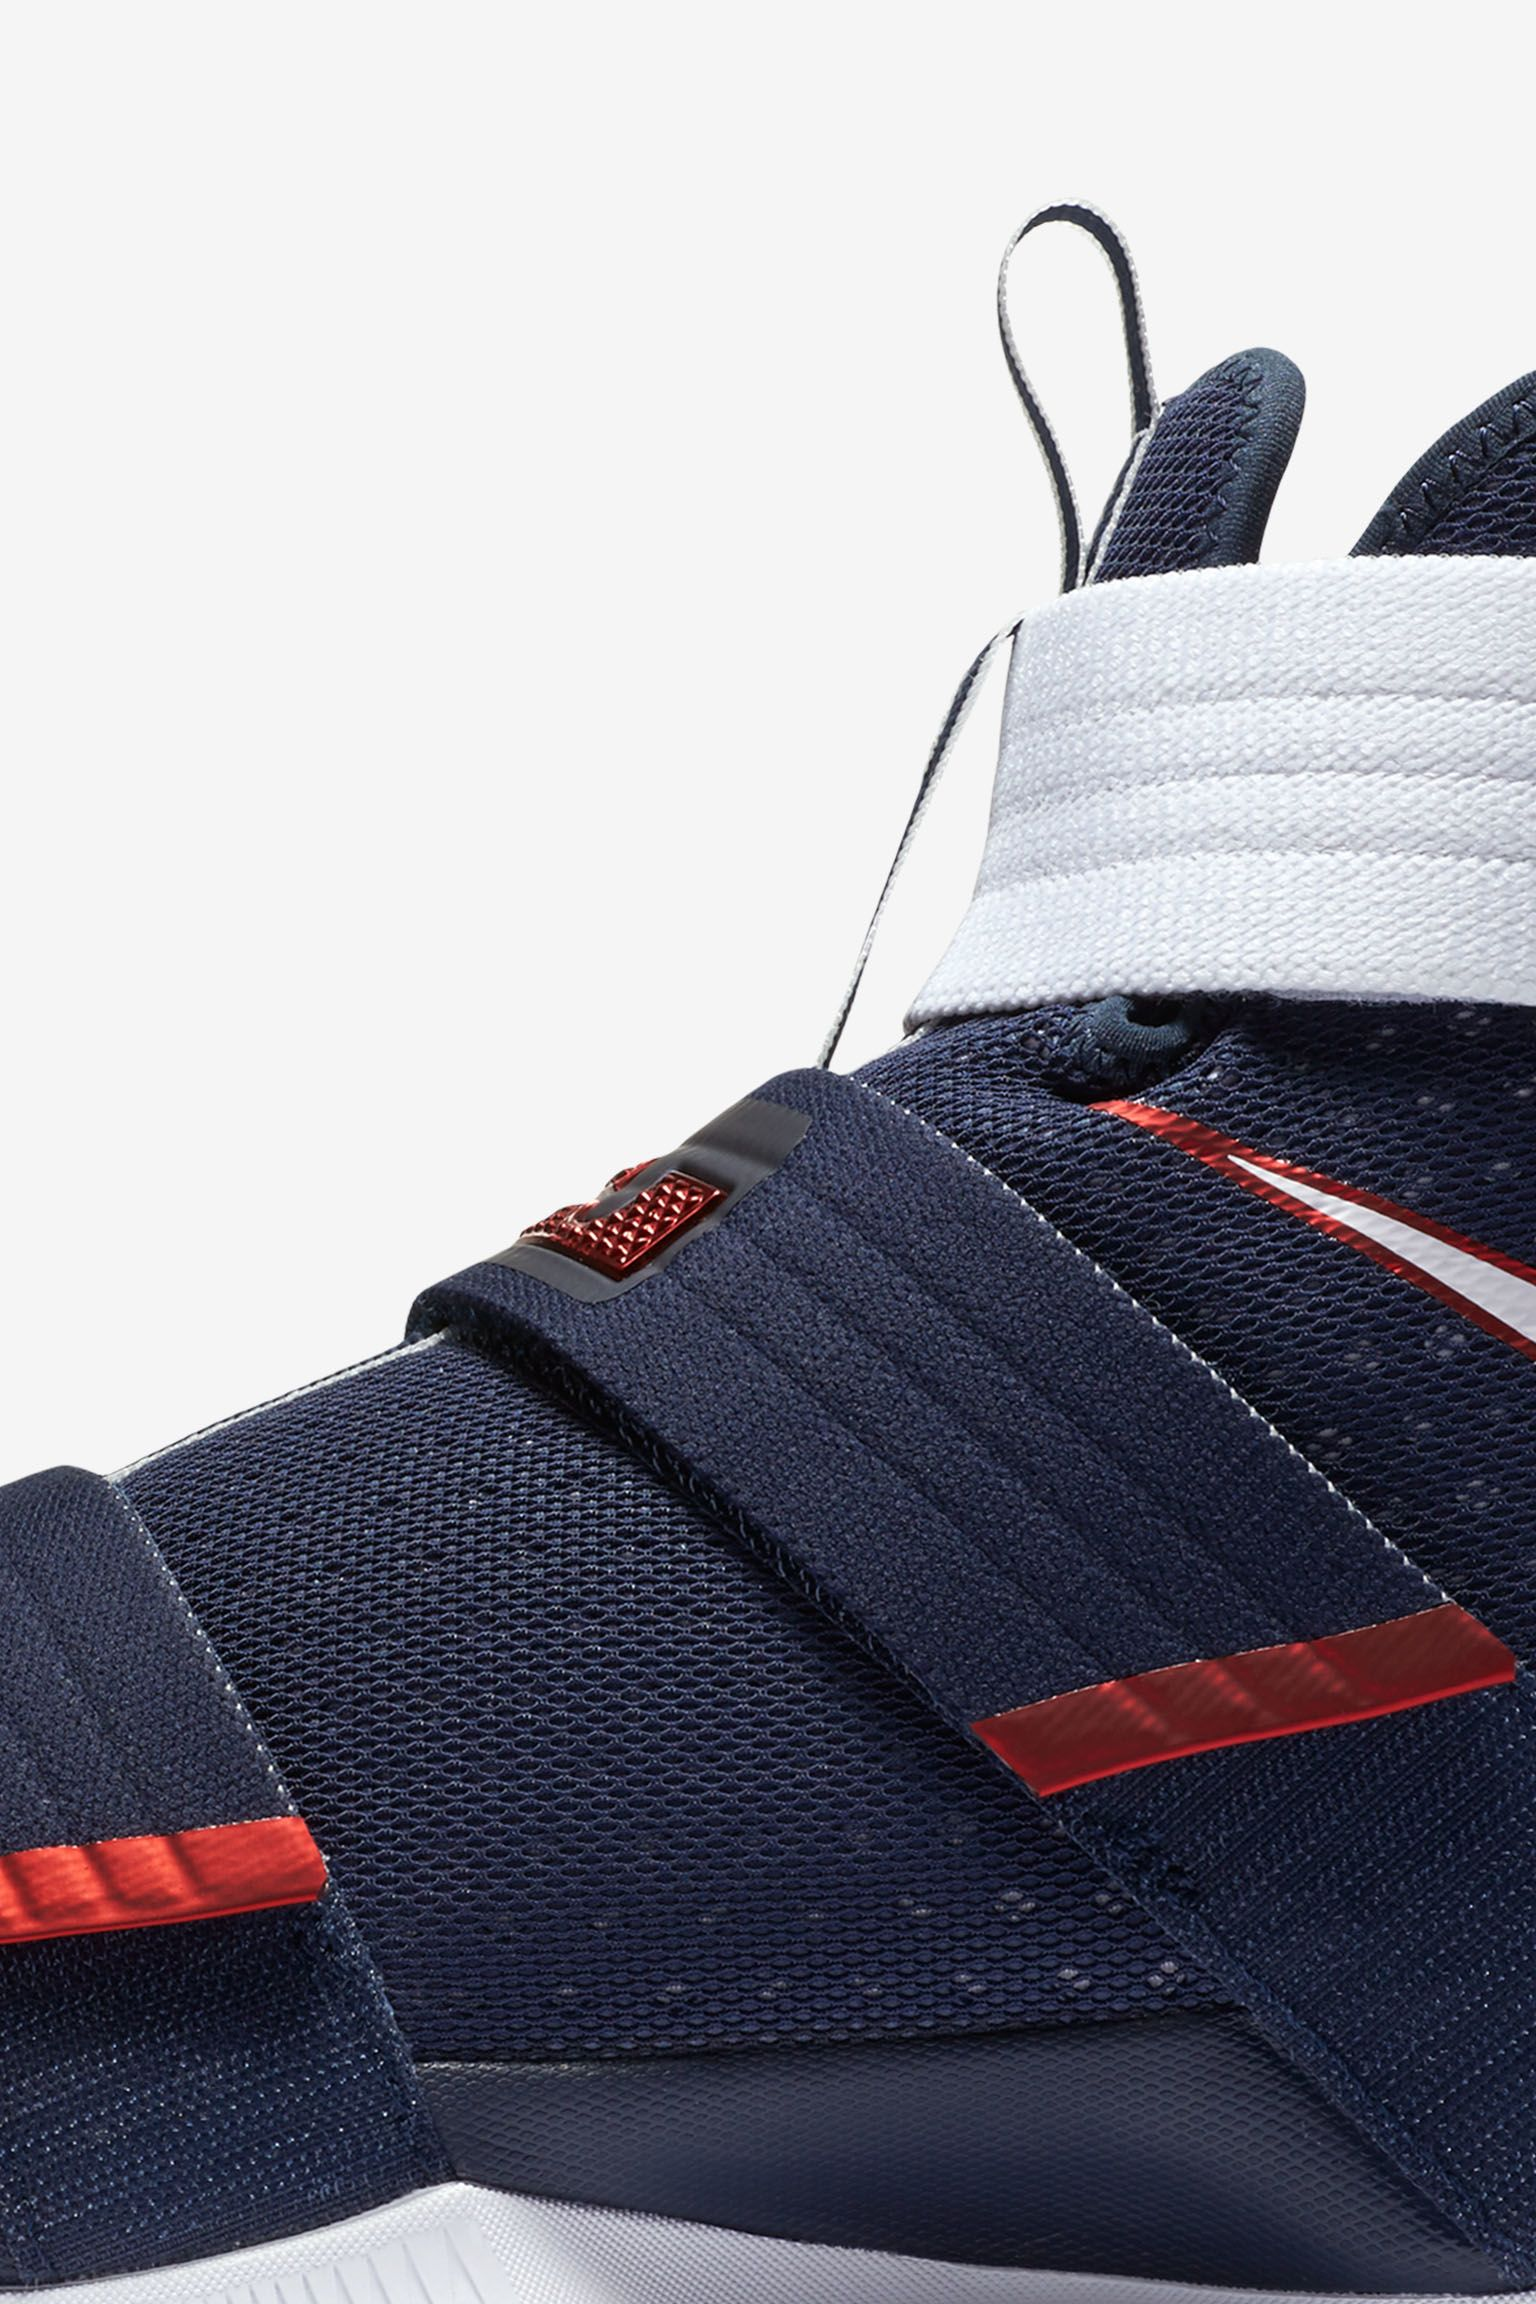 Nike Zoom Lebron Soldier 10 'National Pride' Release Date